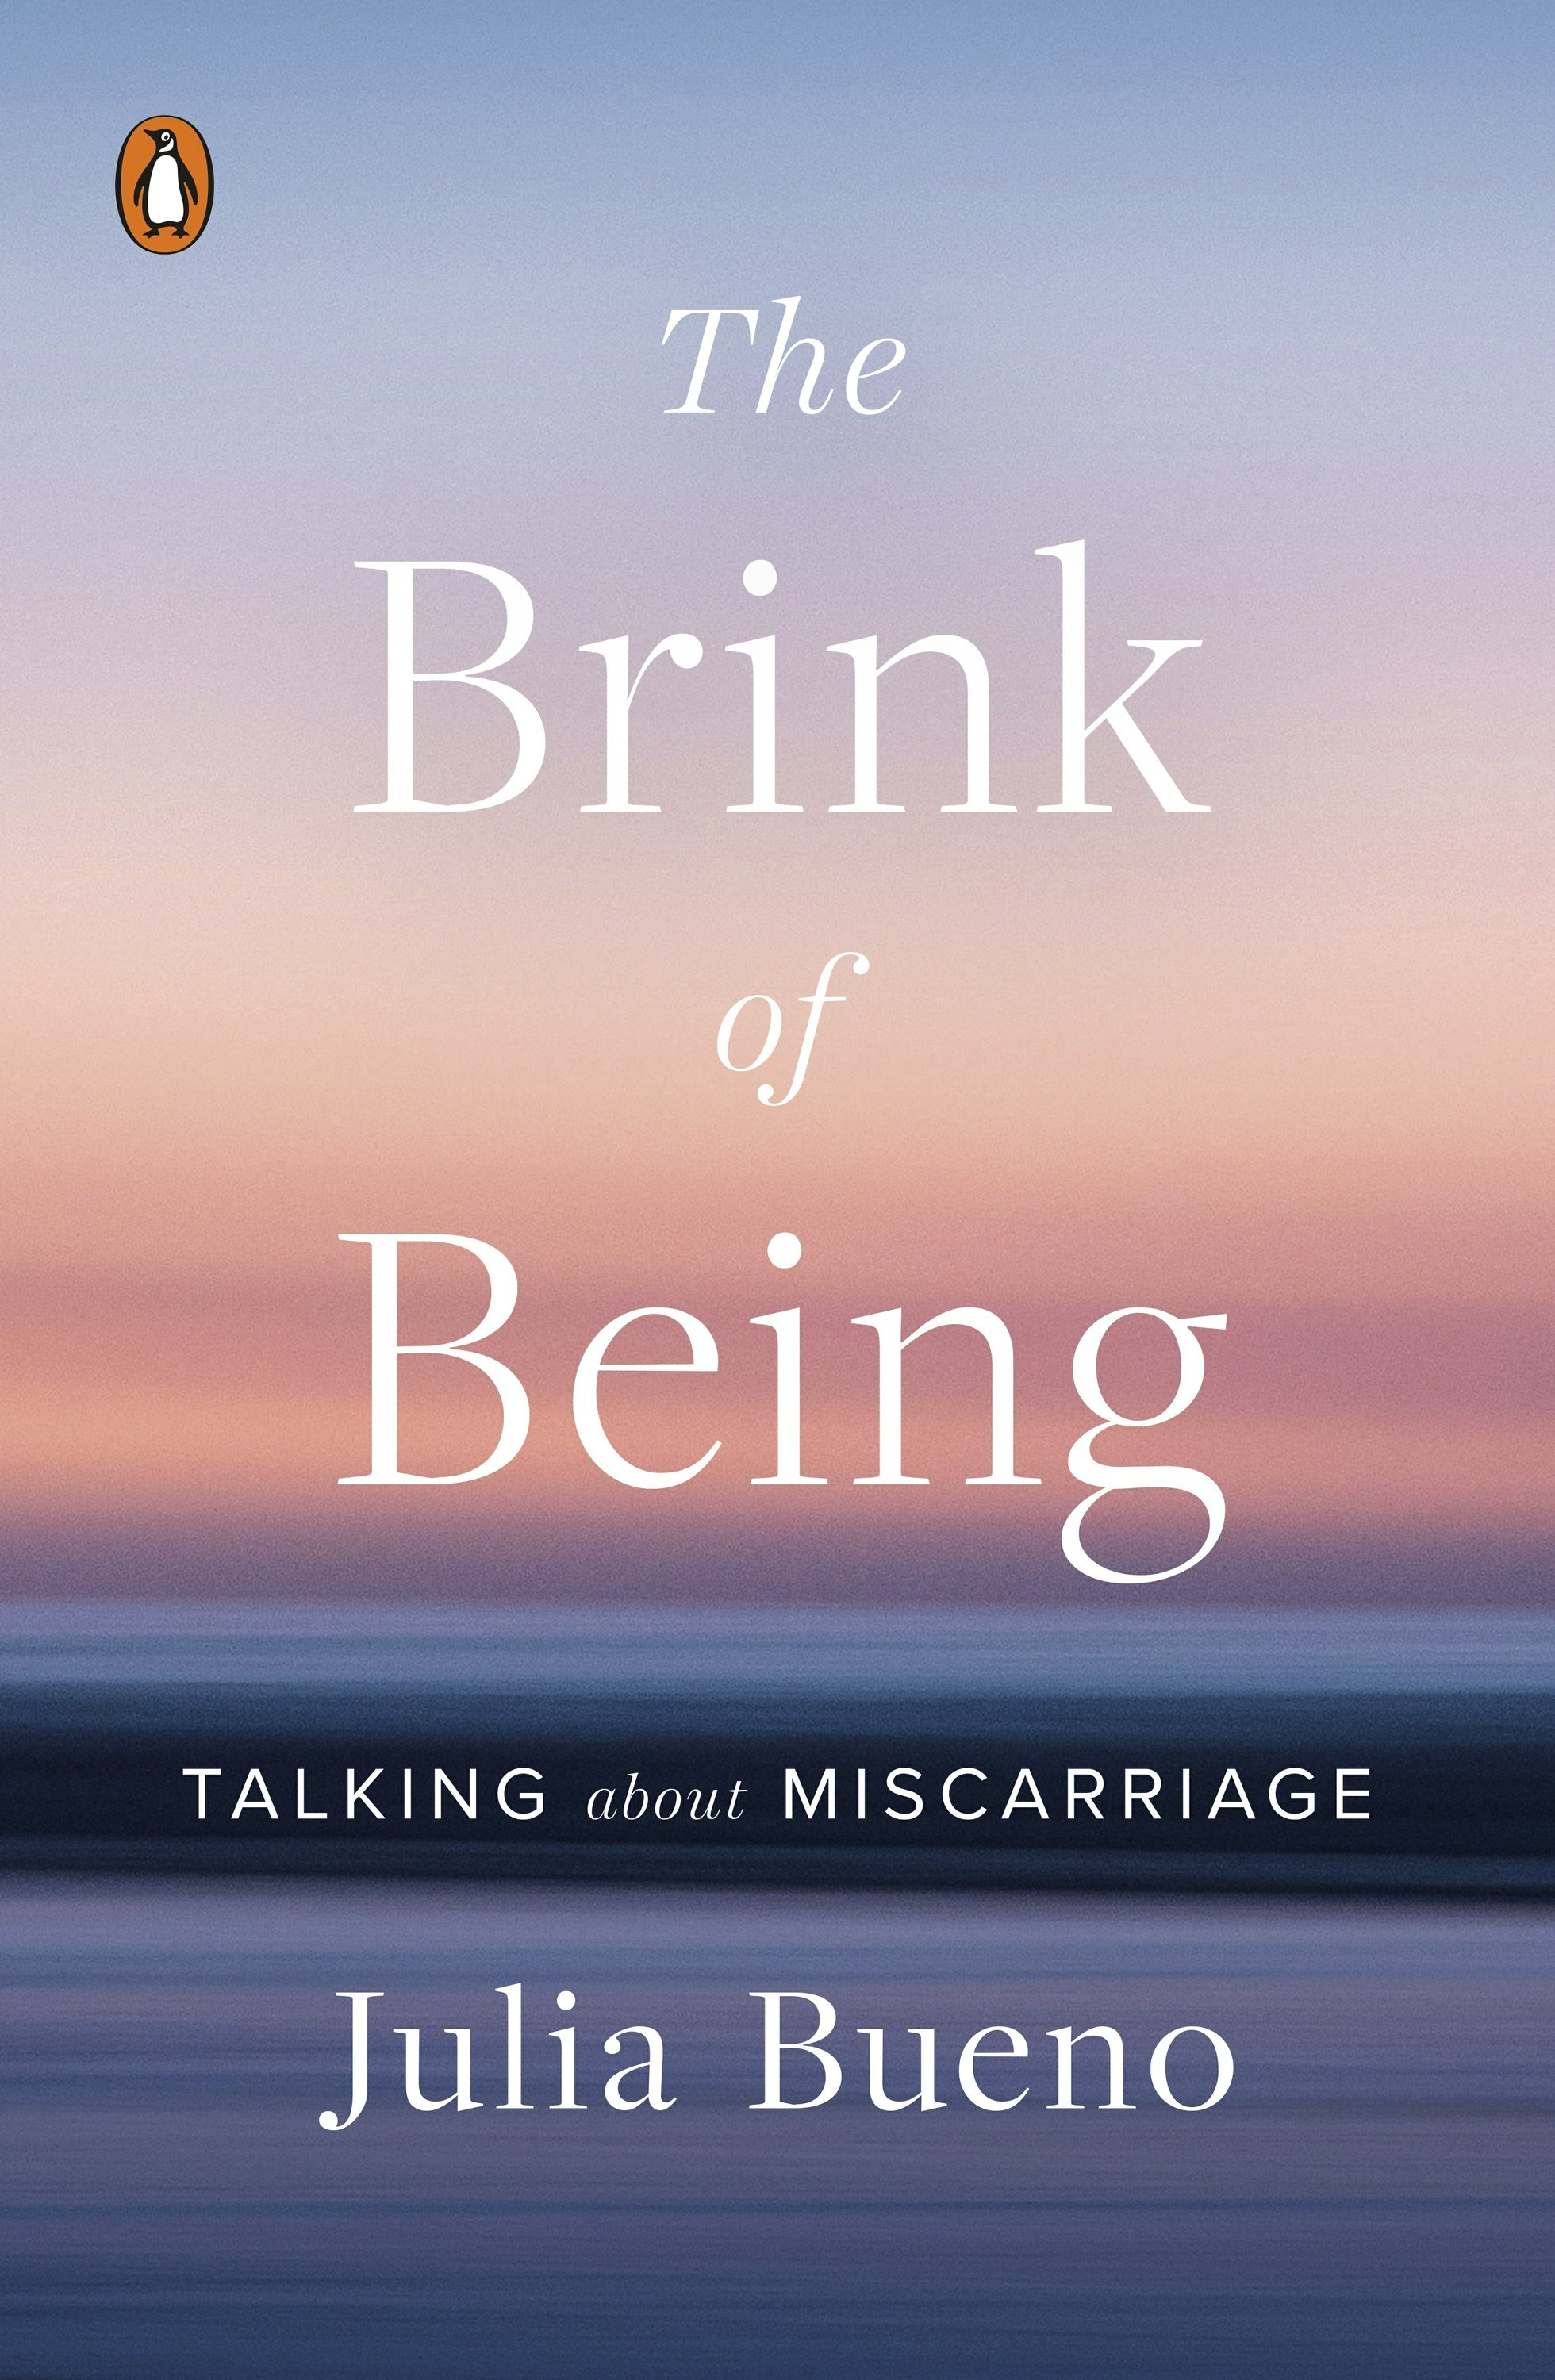 Julia Bueno writes about miscarriage in 'Brink of Being'